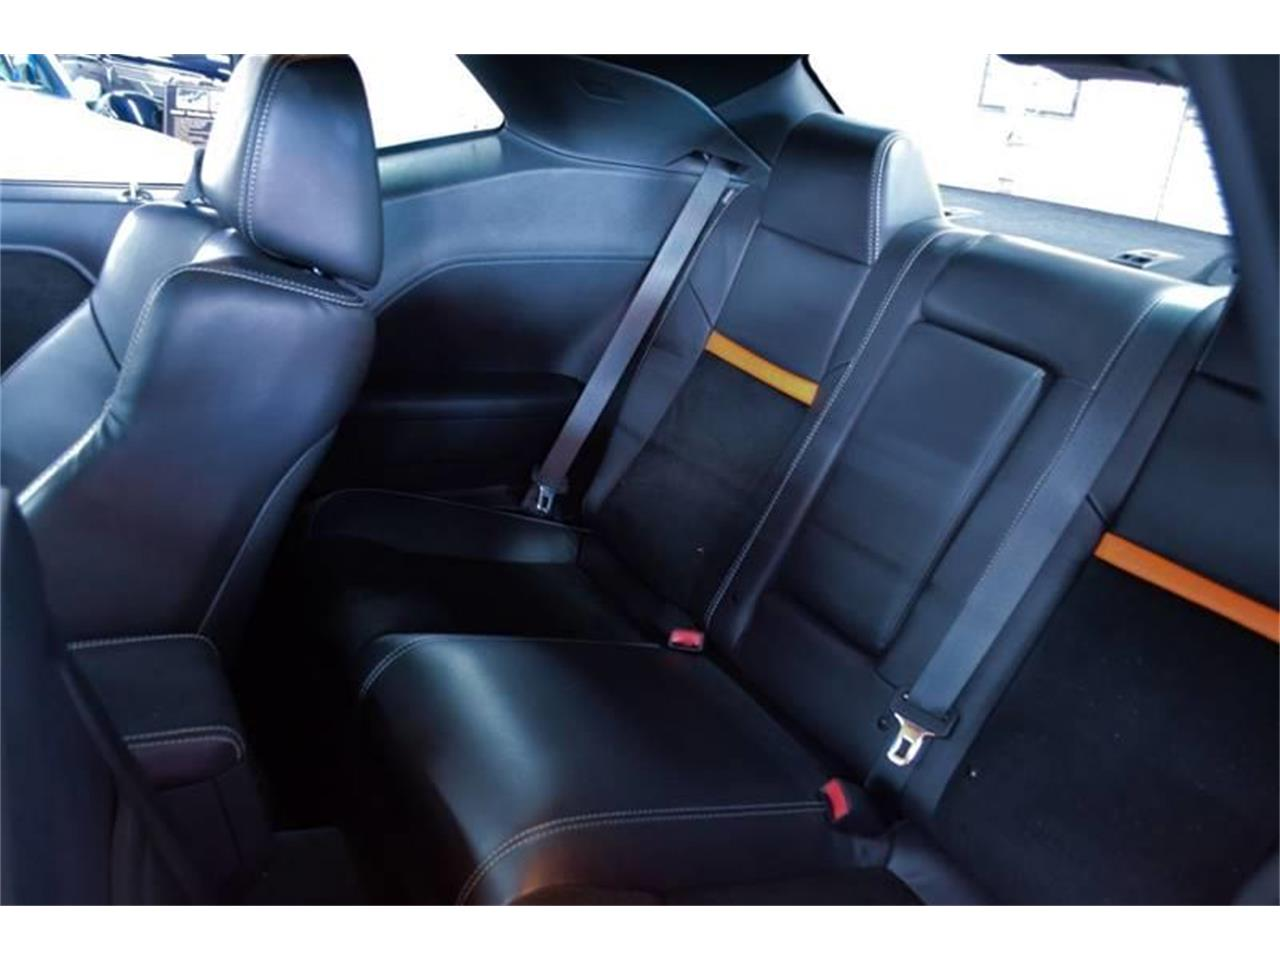 2012 Dodge Challenger (CC-1163143) for sale in Clearwater, Florida